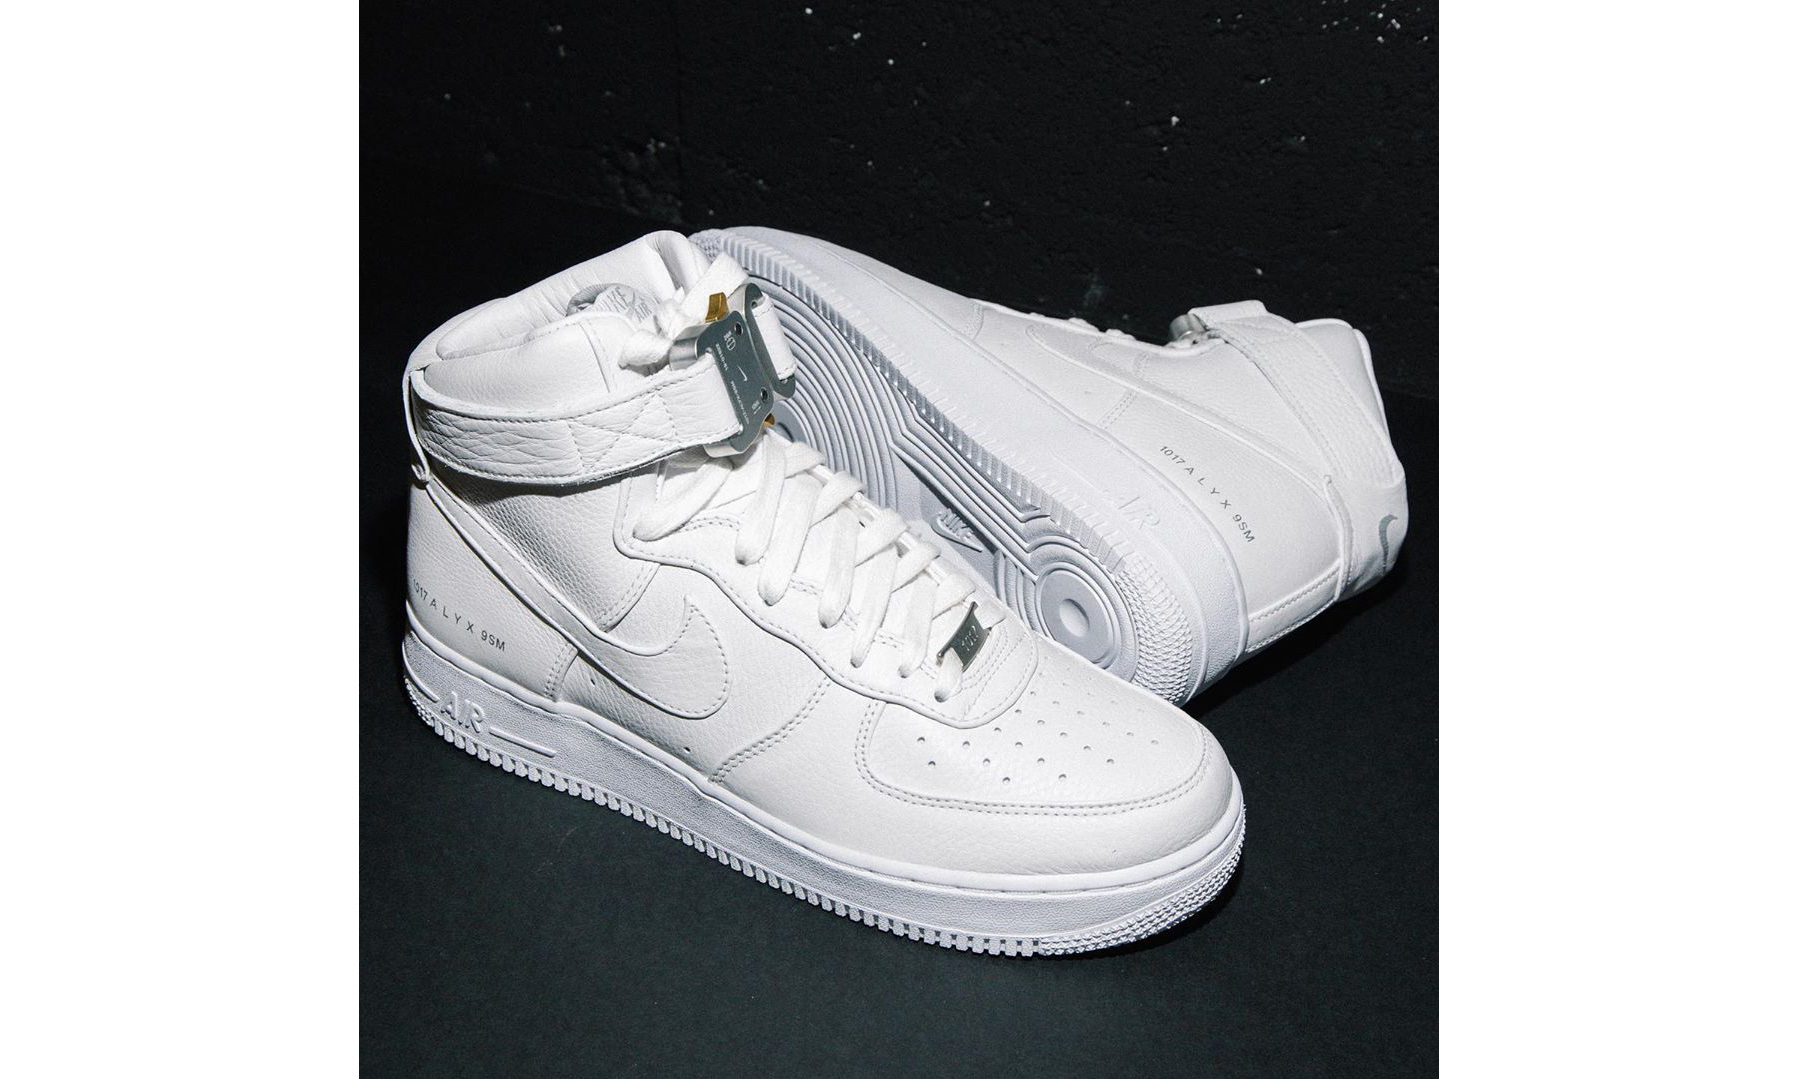 1017 ALYX 9SM x Nike Air Force 1 将于今日限时发售